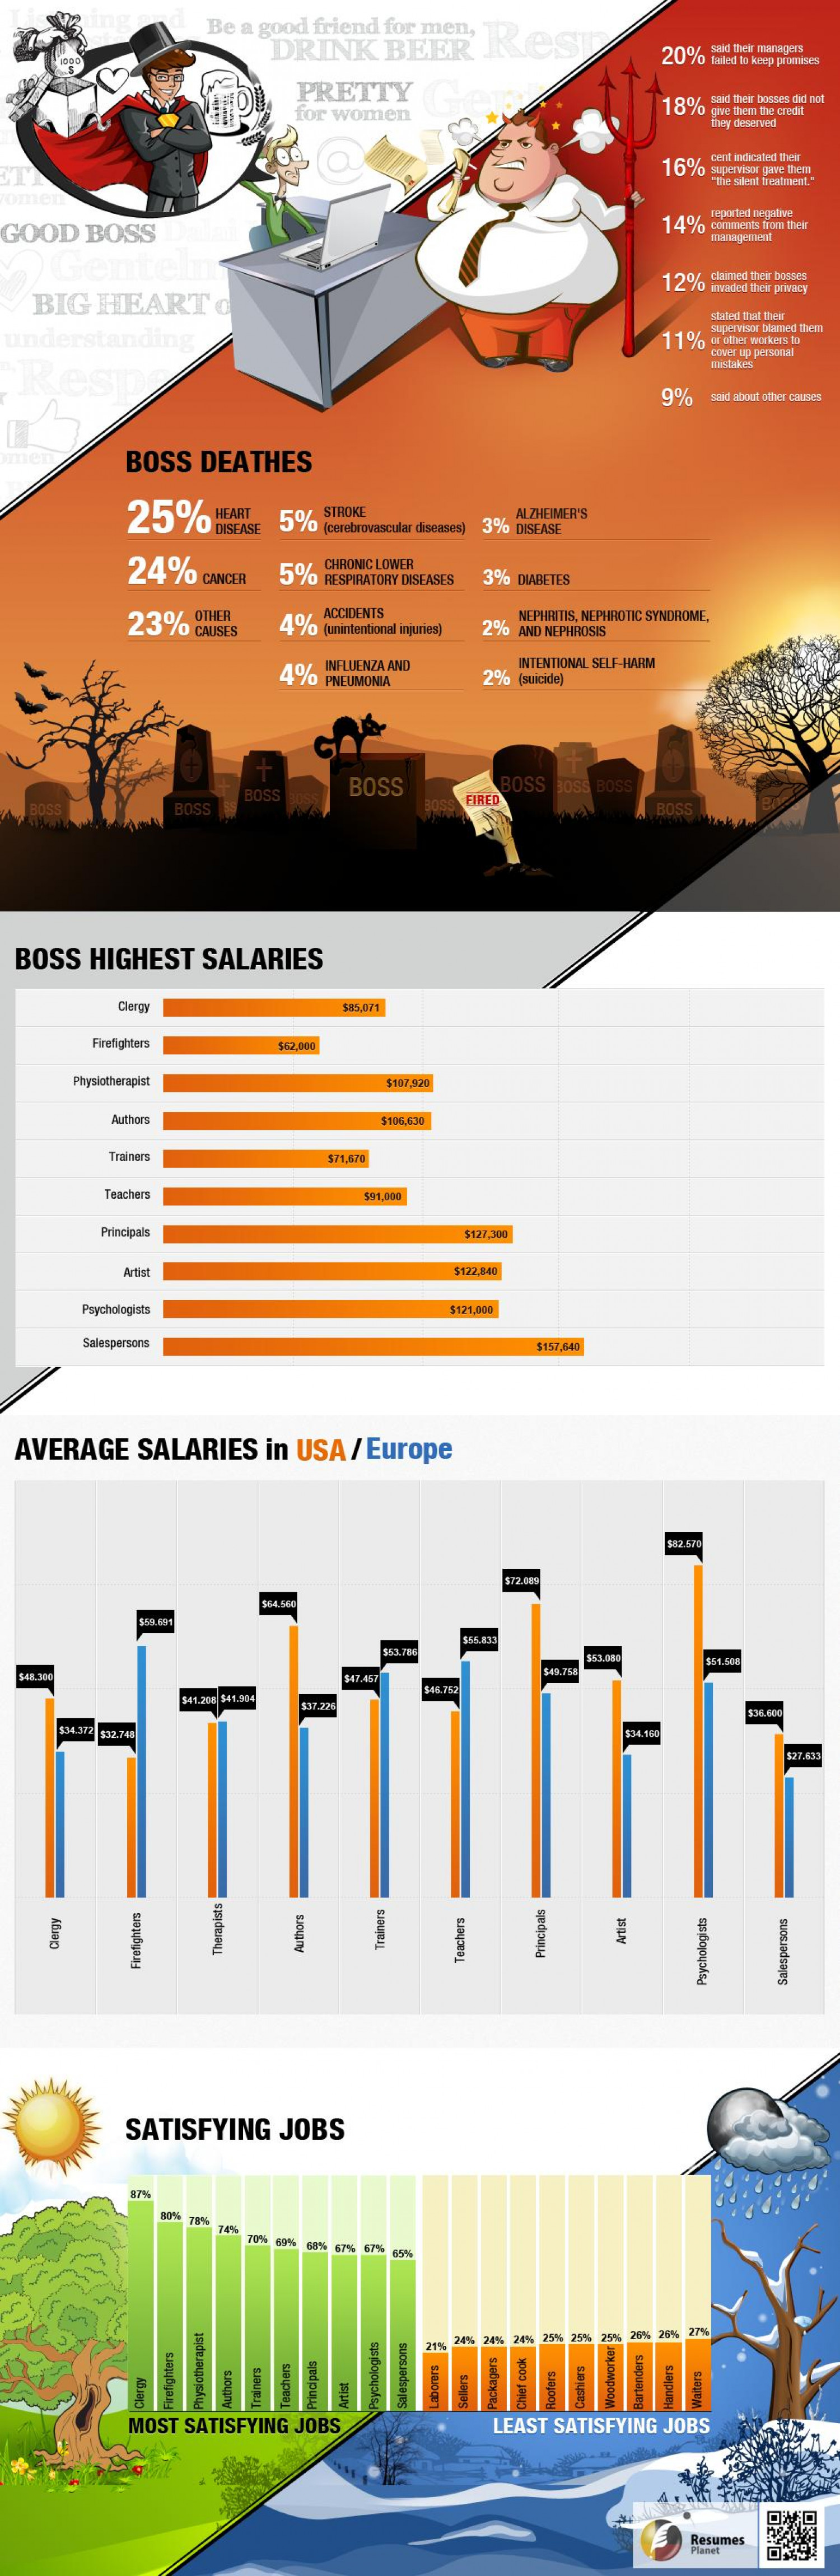 Bosses revelations. Infographic